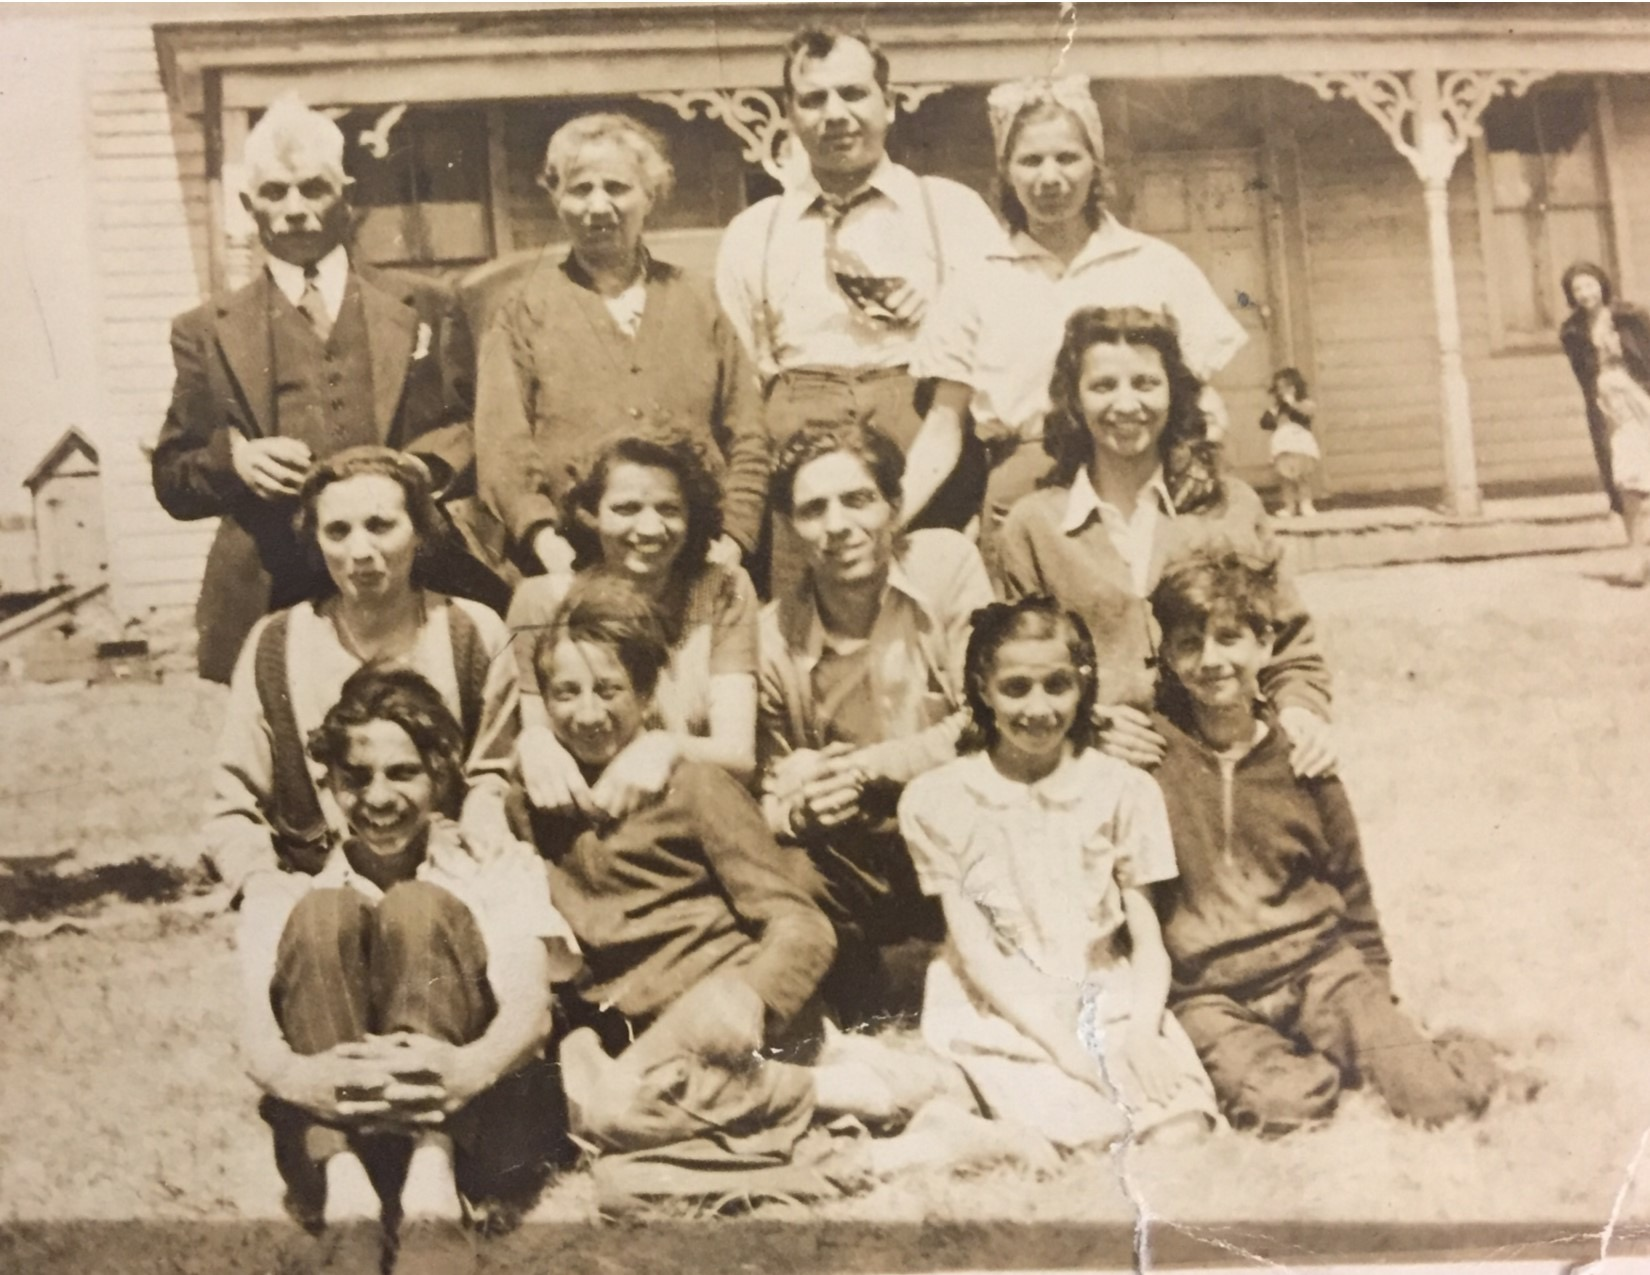 Antonette Cammarata (2nd row, far right) grew up with 11 siblings in a two-room apartment in South Philadelphia. In the summer, the family would work on a New Jersey farm, picking vegetables and sleeping in a chicken coop.